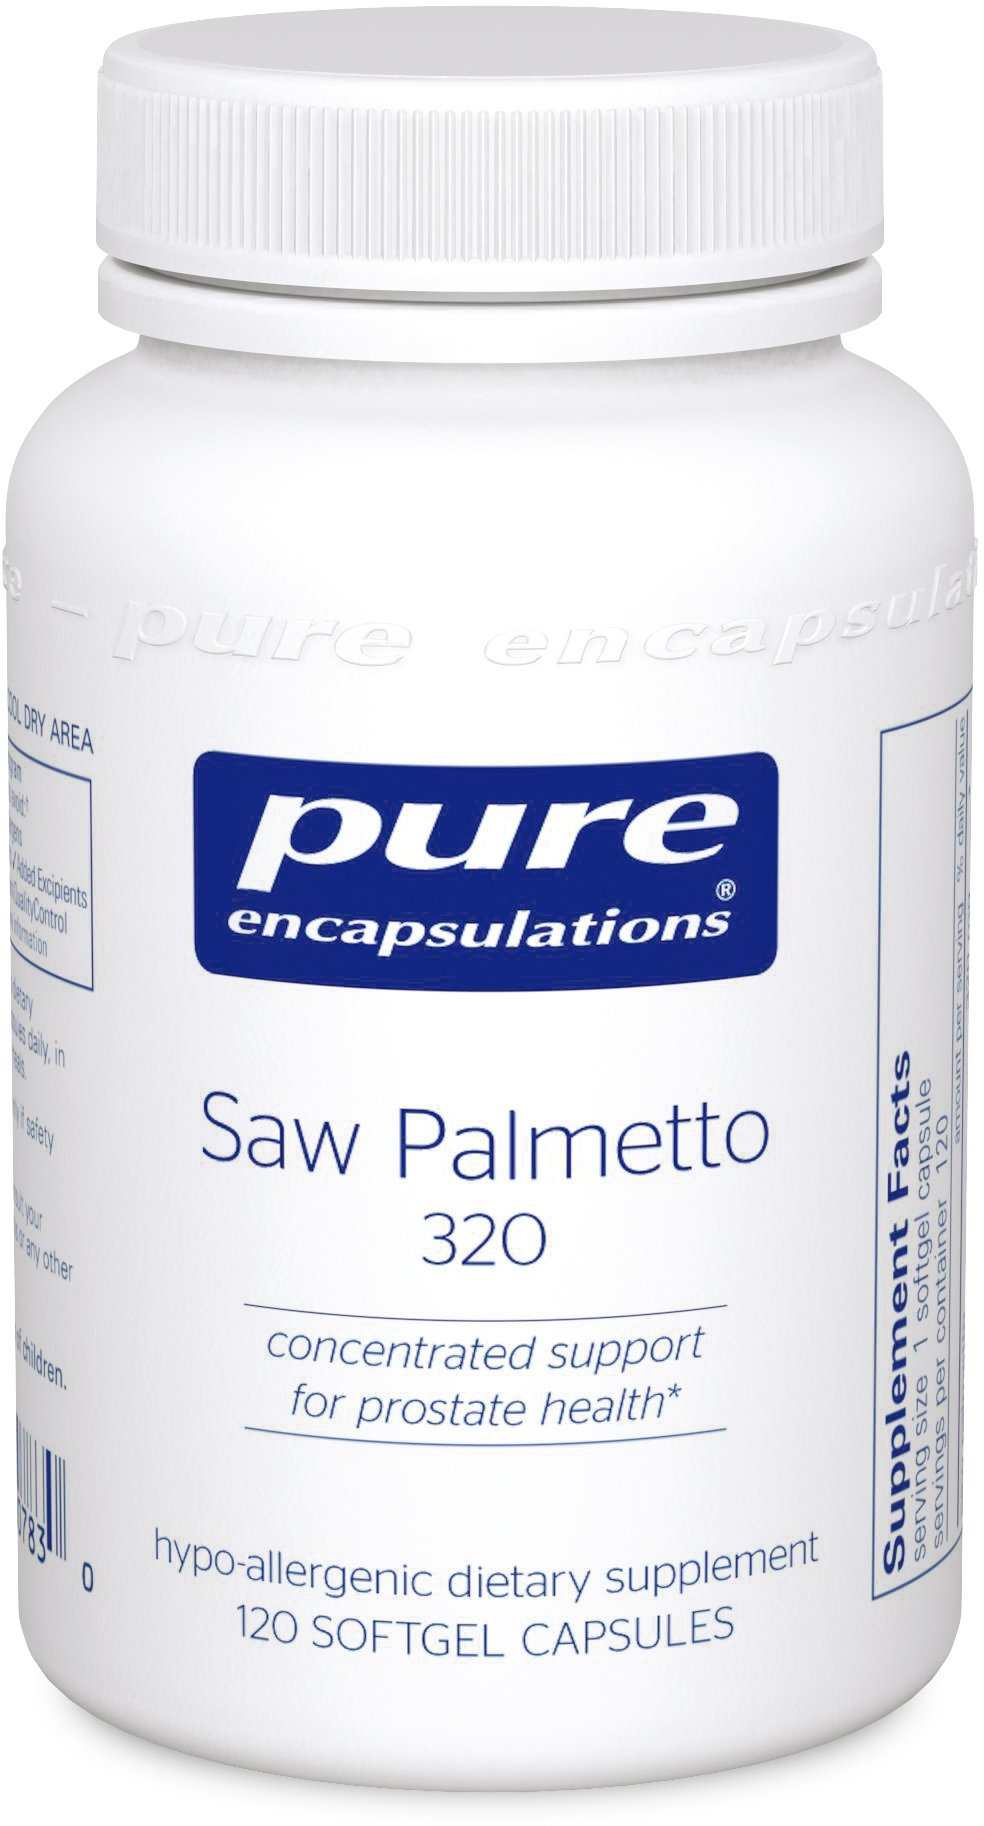 Pure Encapsulations - Saw Palmetto 320 - Hypoallergenic Supplement with Concentrated Support for Healthy Prostate and Urinary Function* - 120 Softgel Capsules